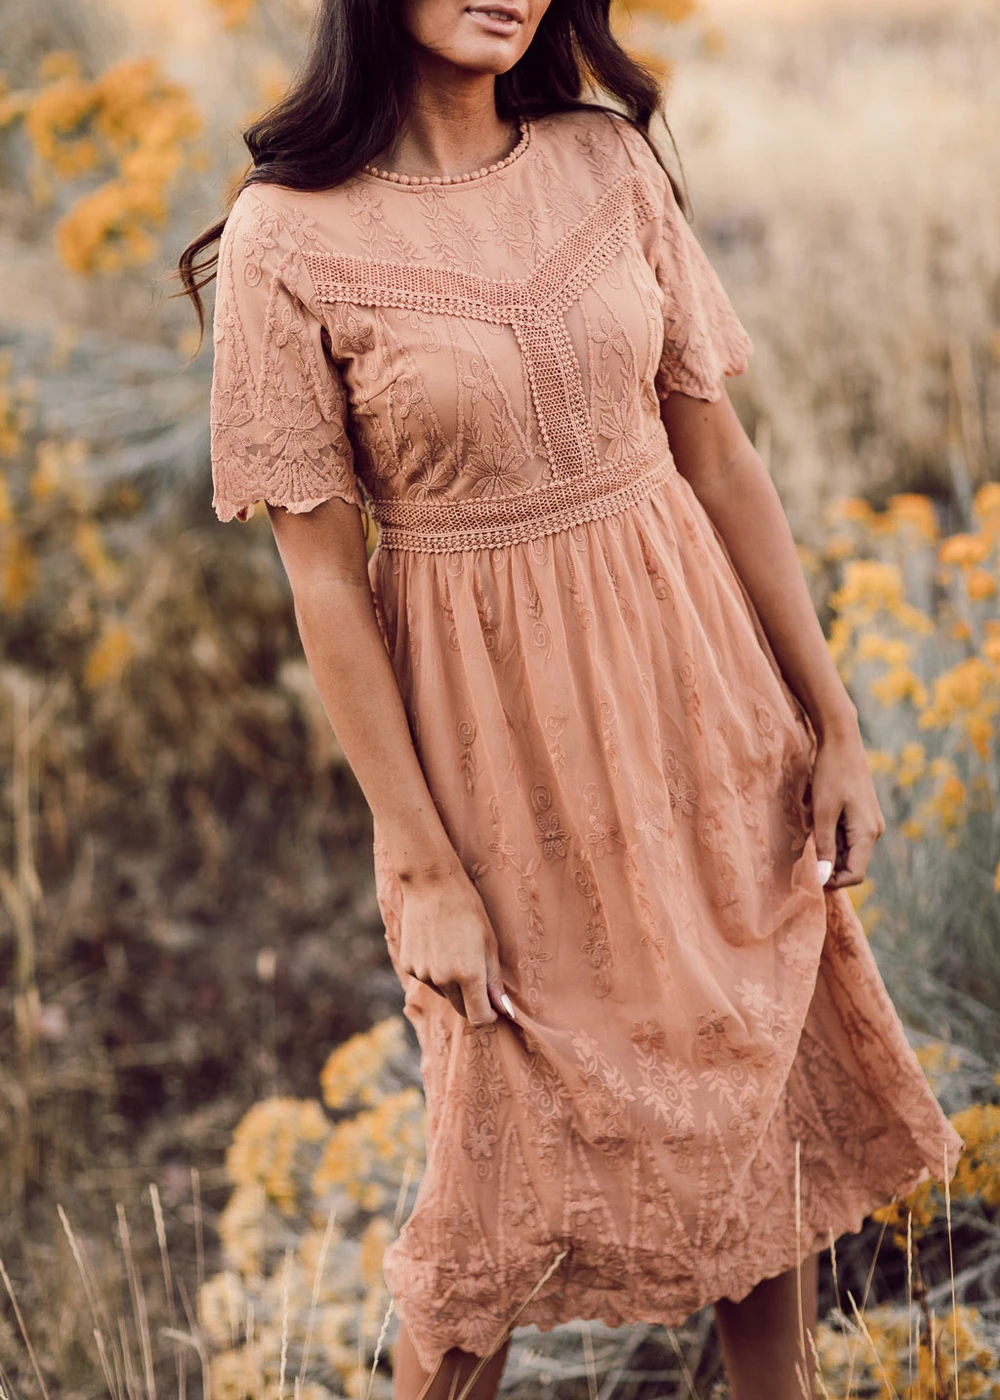 Let S Fall In Love The Mabel Lace Midi Dress Is All Romance Feel Swept Up In This Fully Lined Lace Detailed Ens Casual Dress Outfits Dresses Rose Maxi Dress